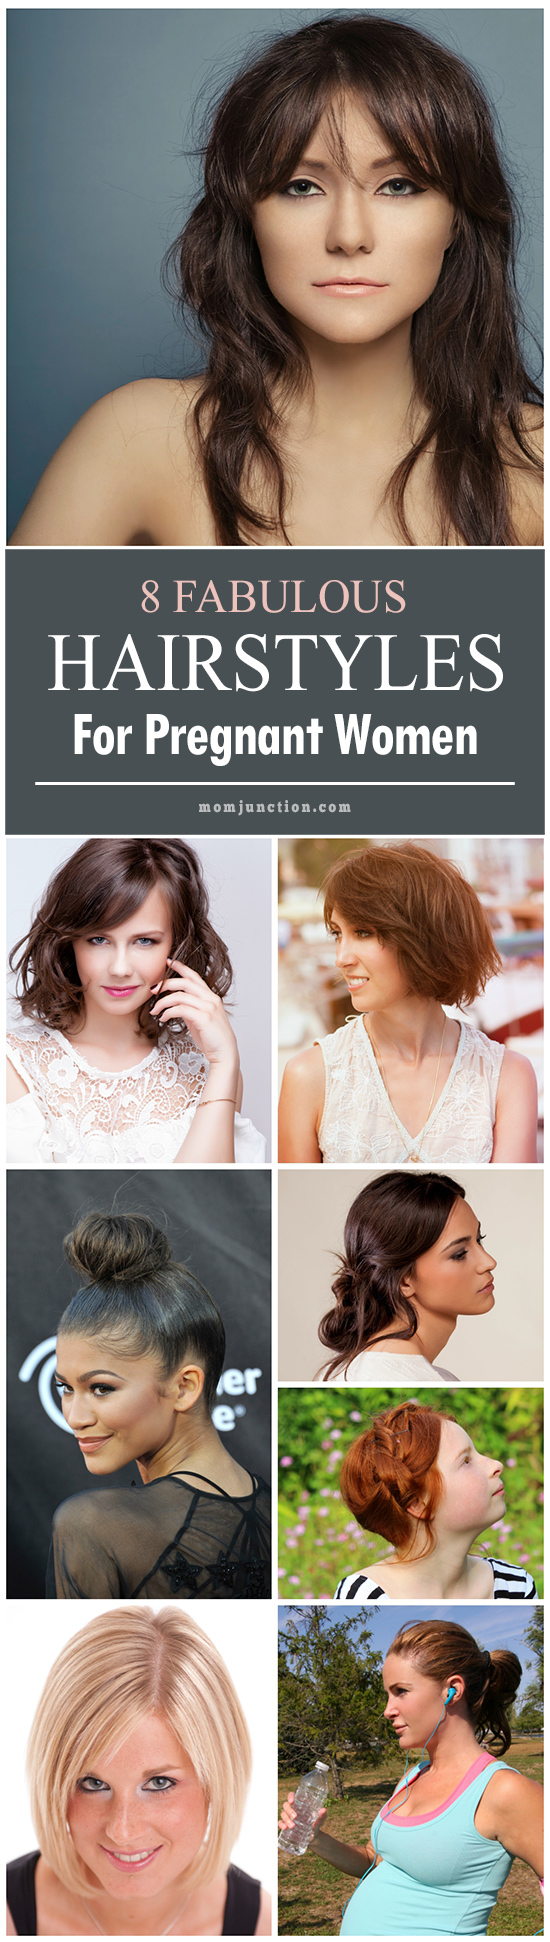 8 Fabulous Hairstyles For Pregnant Women-4555